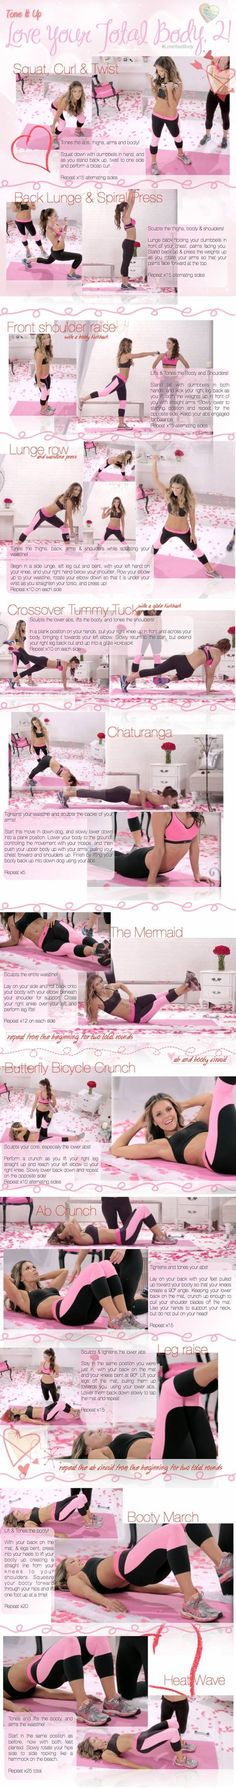 love-your-total-body-2-Tone-it-up-| http://workout-exercises.lemoncoin.org